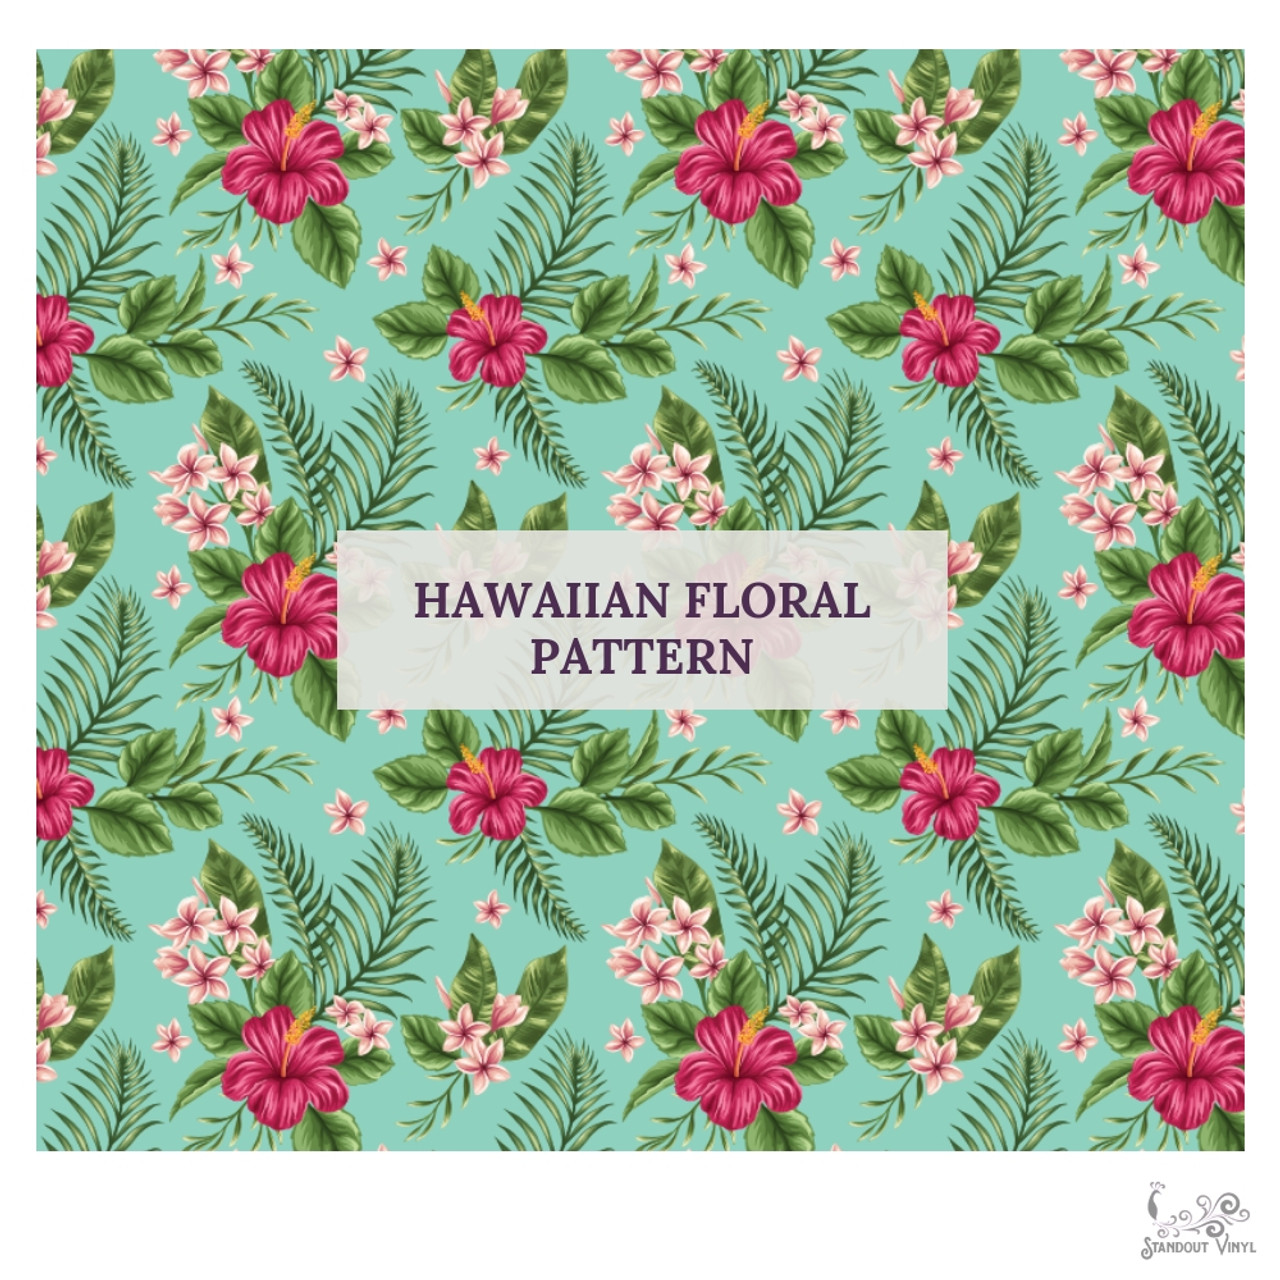 Hawaiian Floral Pattern Choose Adhesive Or Htv Standout Vinyl